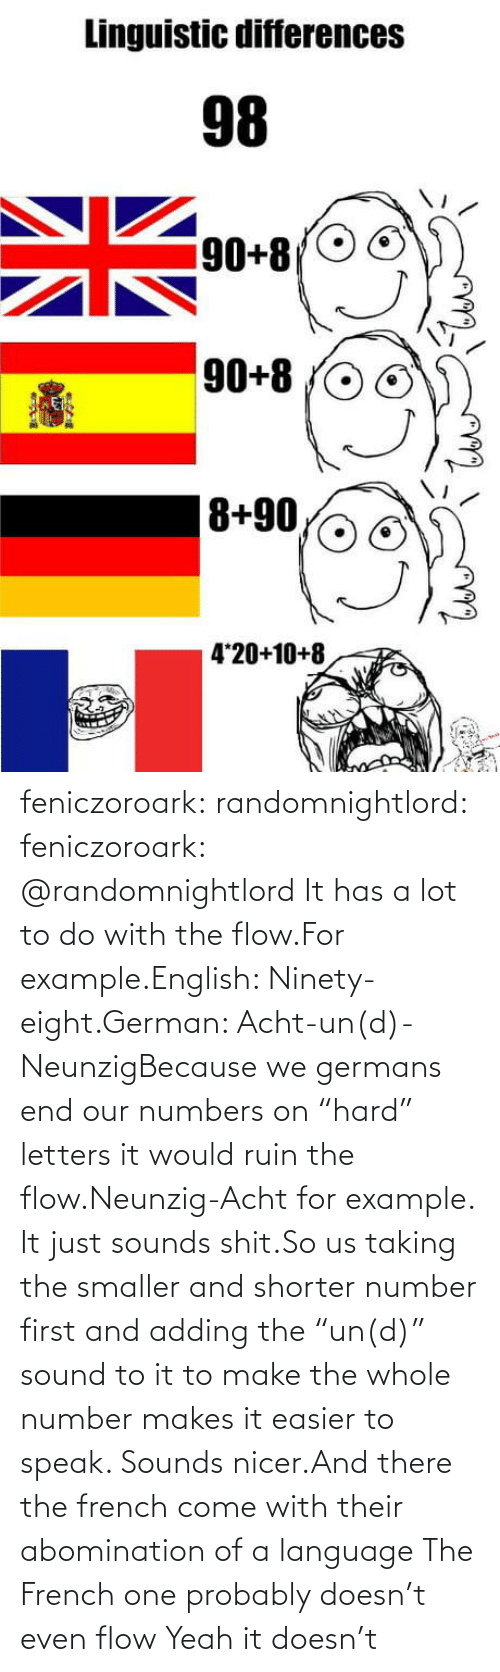 "to-do-with: feniczoroark:  randomnightlord:  feniczoroark:  @randomnightlord    It has a lot to do with the flow.For example.English: Ninety-eight.German: Acht-un(d)-NeunzigBecause we germans end our numbers on ""hard"" letters it would ruin the flow.Neunzig-Acht for example. It just sounds shit.So us taking the smaller and shorter number first and adding the ""un(d)"" sound to it to make the whole number makes it easier to speak. Sounds nicer.And there the french come with their abomination of a language    The French one probably doesn't even flow   Yeah it doesn't"